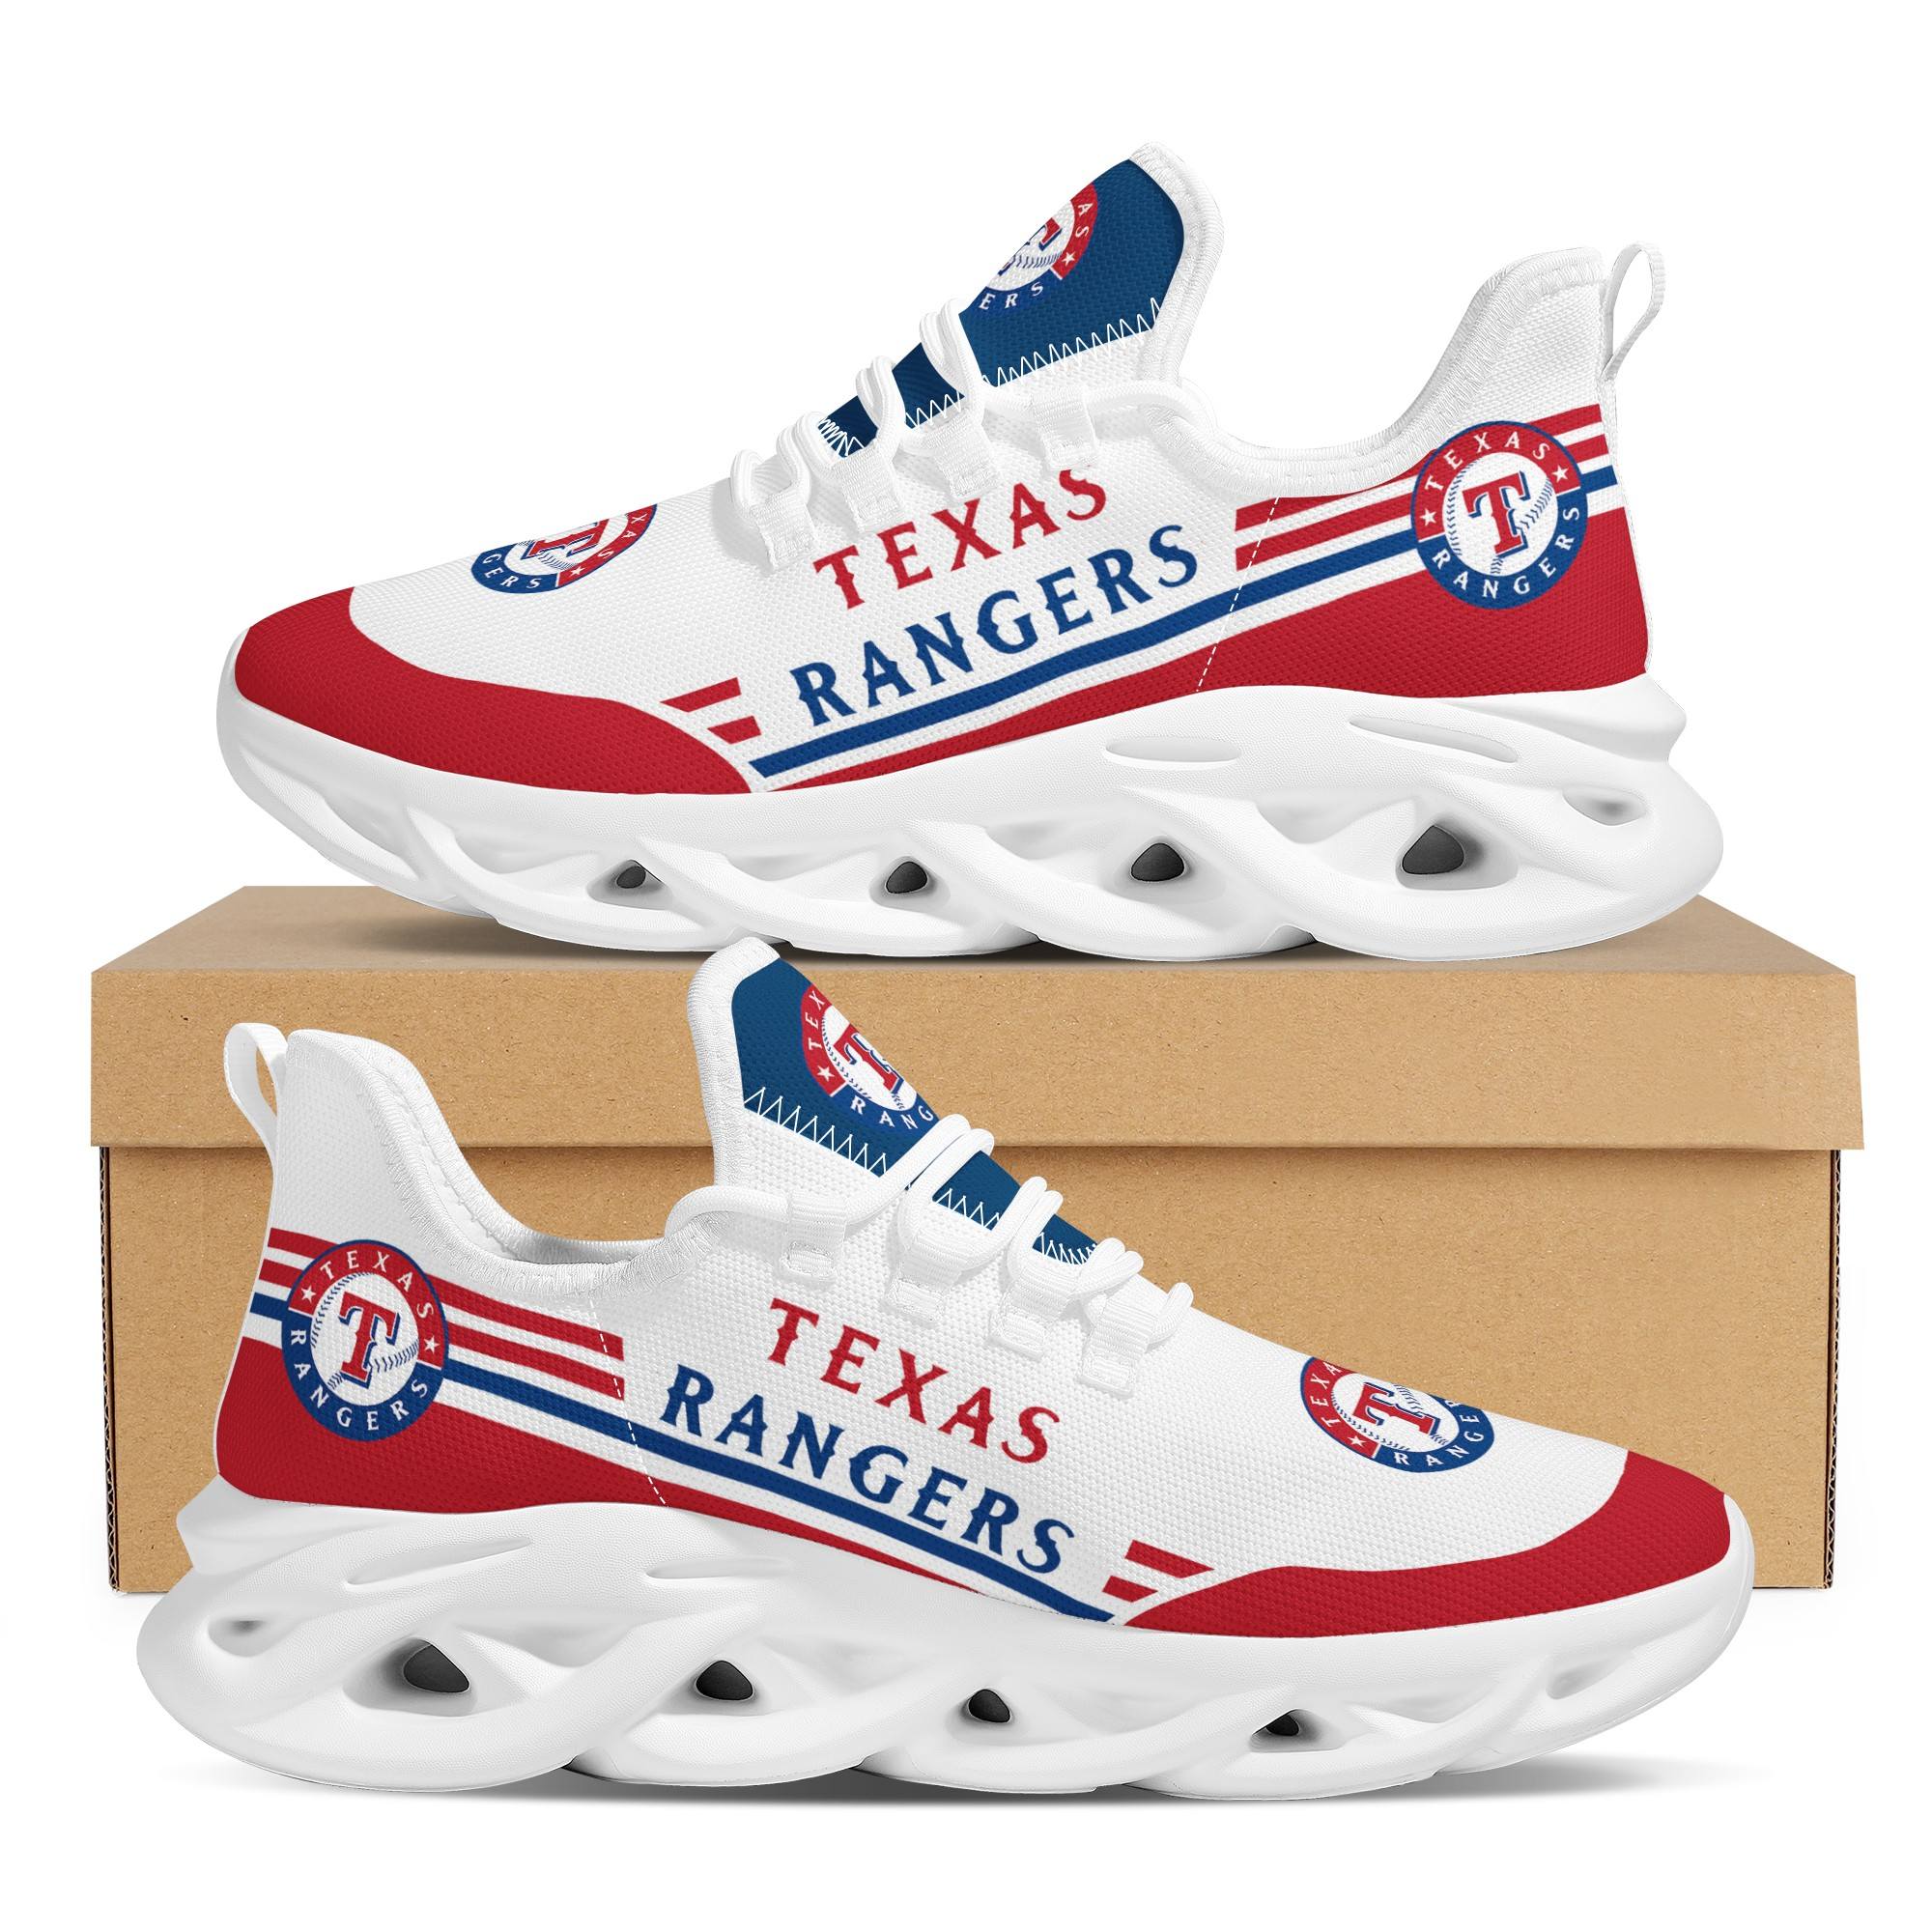 Men's Texas Rangers Flex Control Sneakers 002